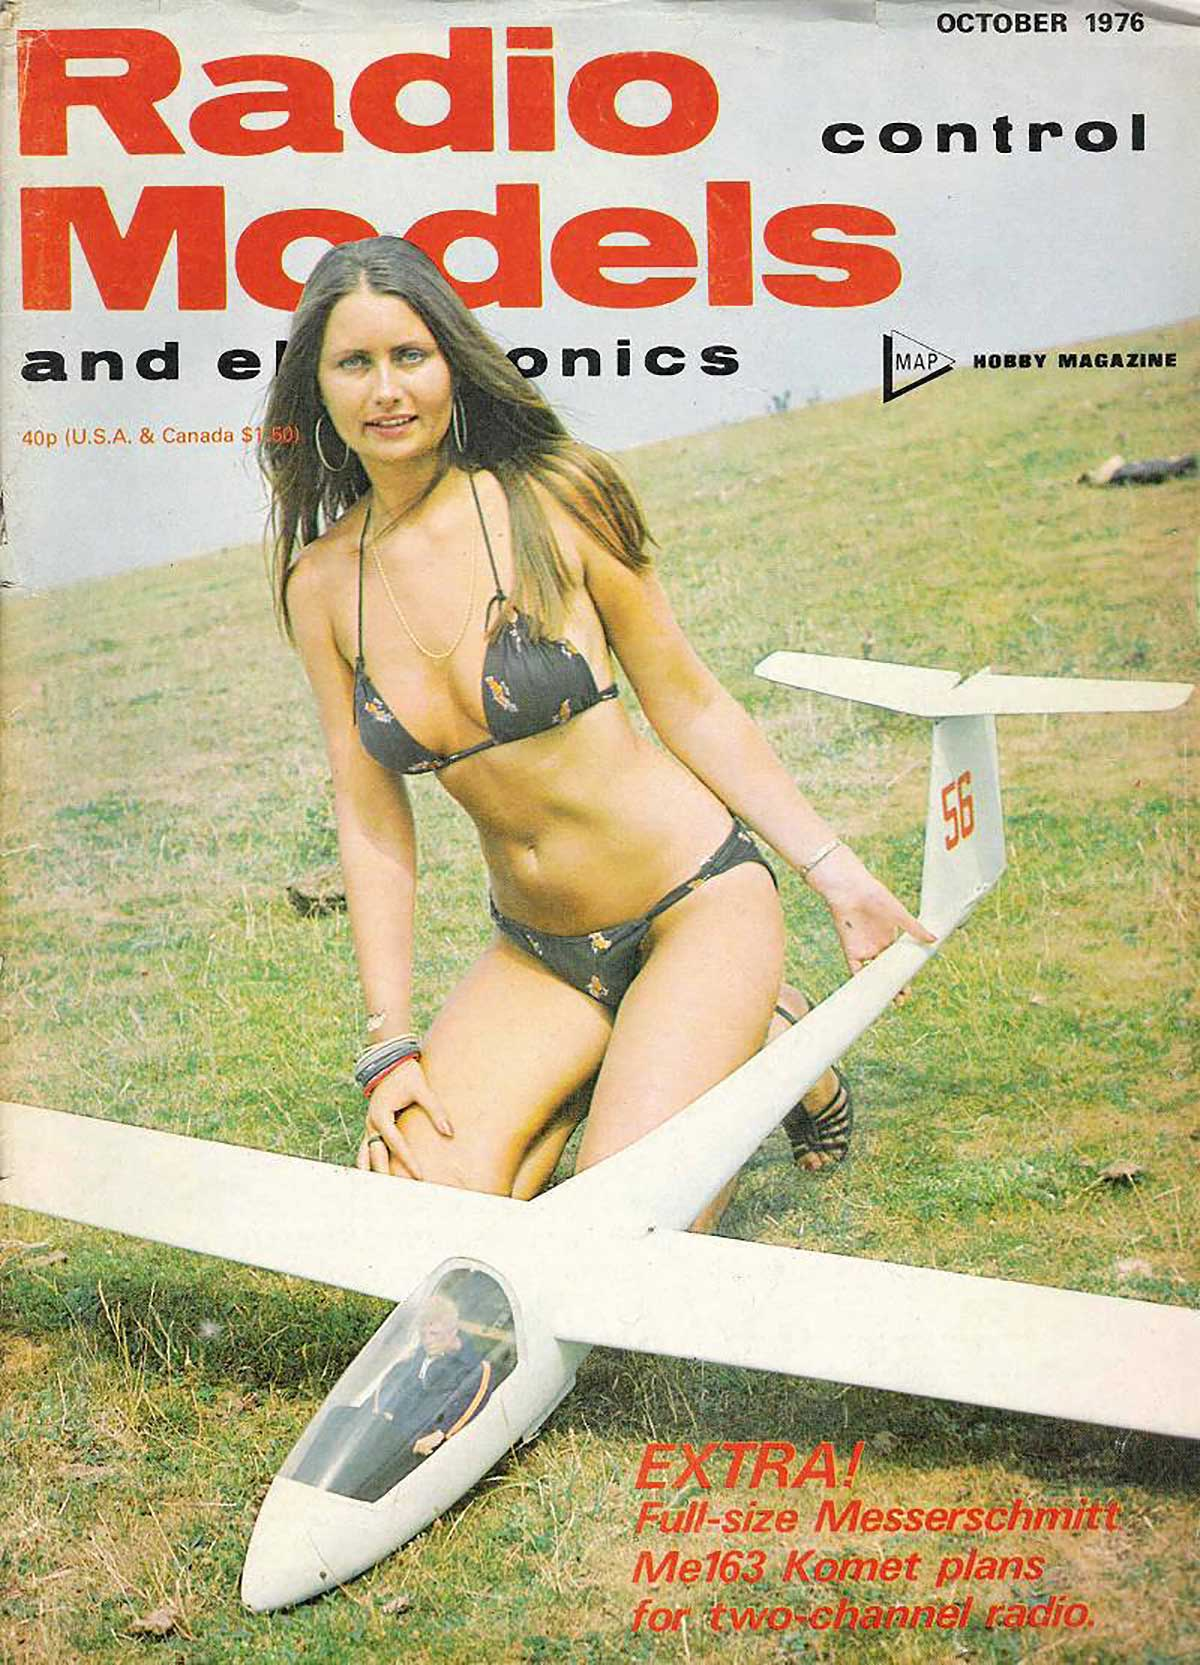 Is this a tiny person in a glider being held by a woman in a bikini, or a giant woman in a bikini holding a...